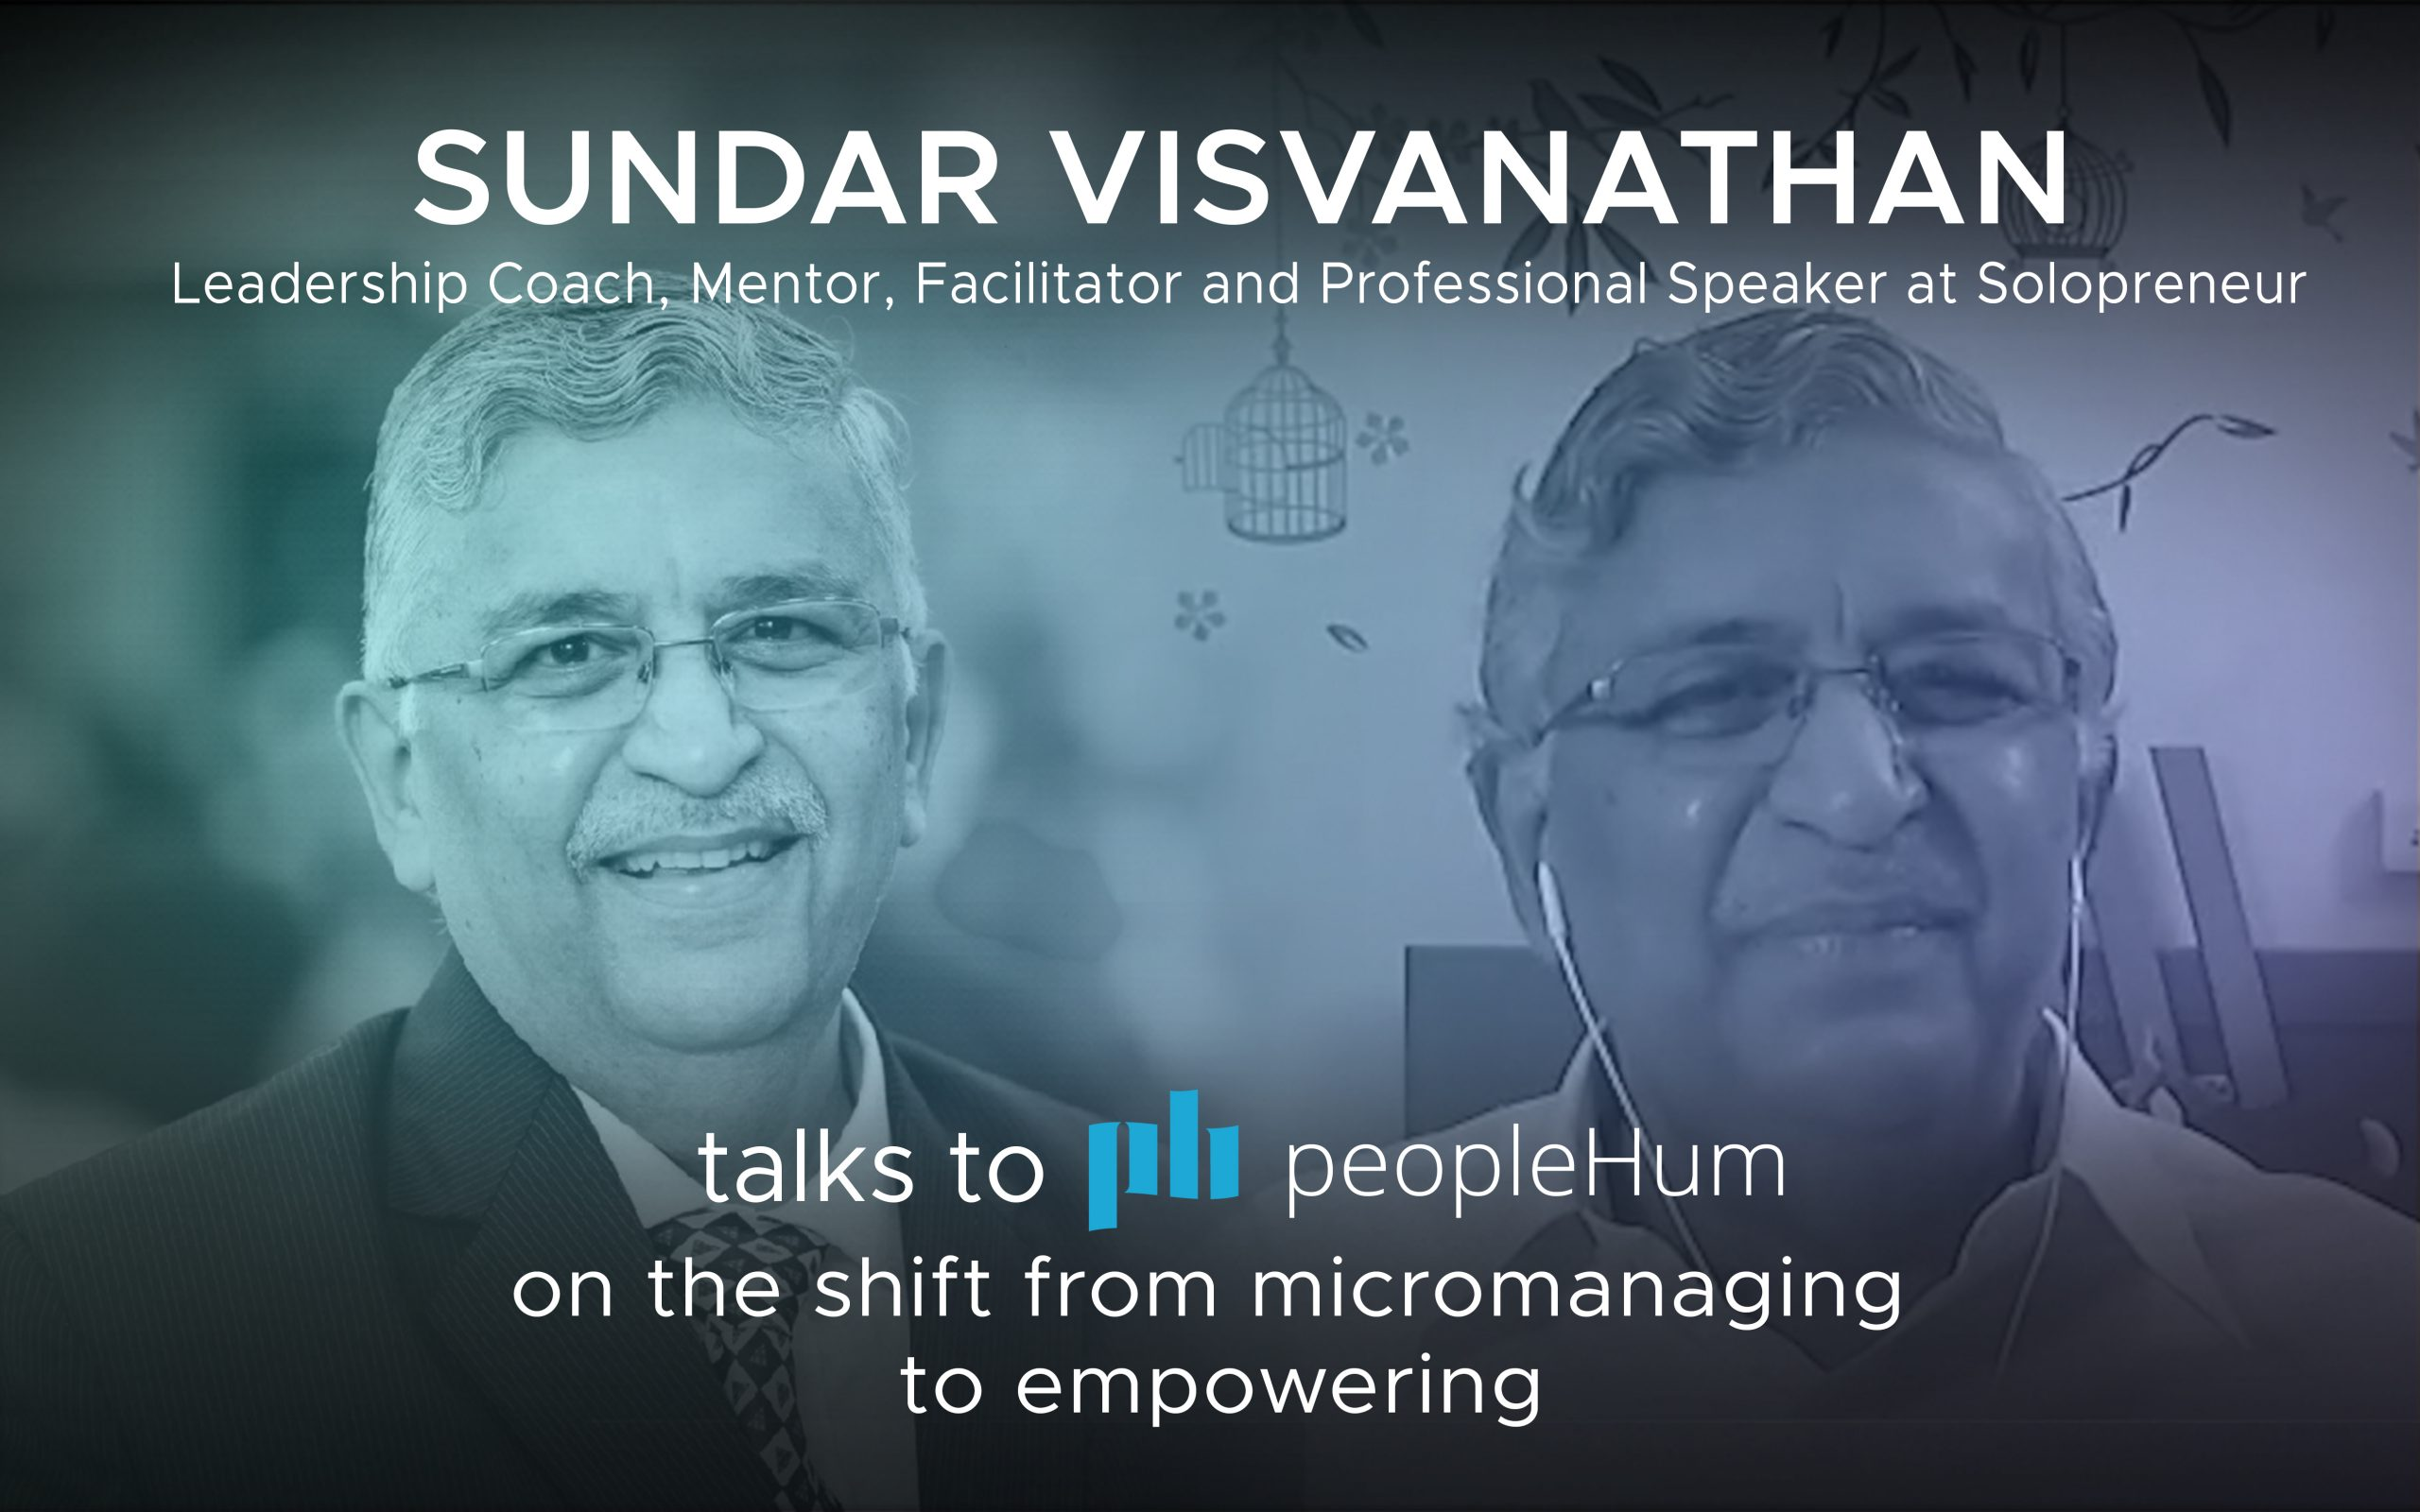 The shift from micromanaging to empowering - Sundar Visvanathan [Interview]